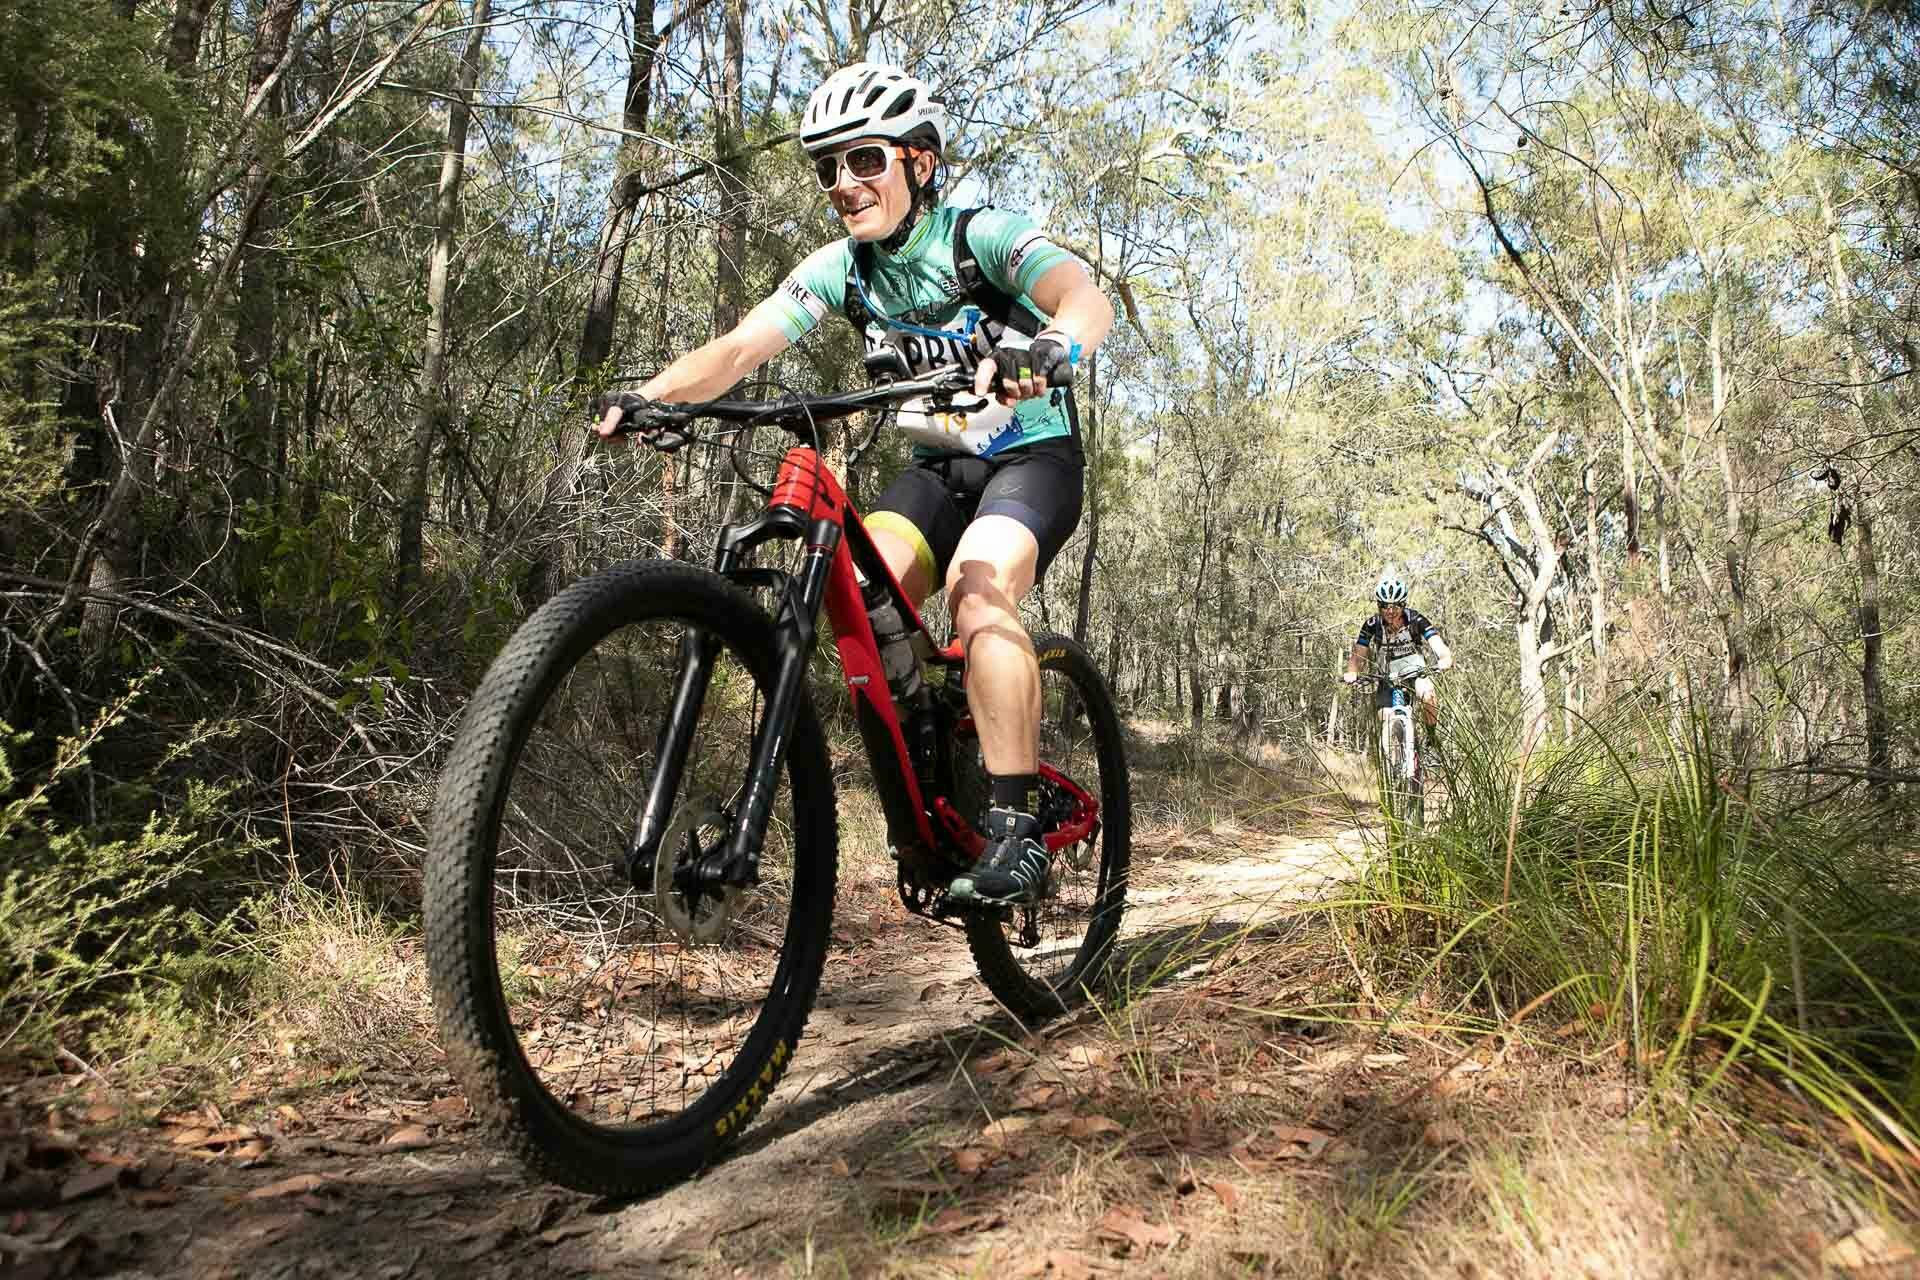 Enter the Lake Mac Adventure Race and Start 2021 Right, outer image collective, mountain bike